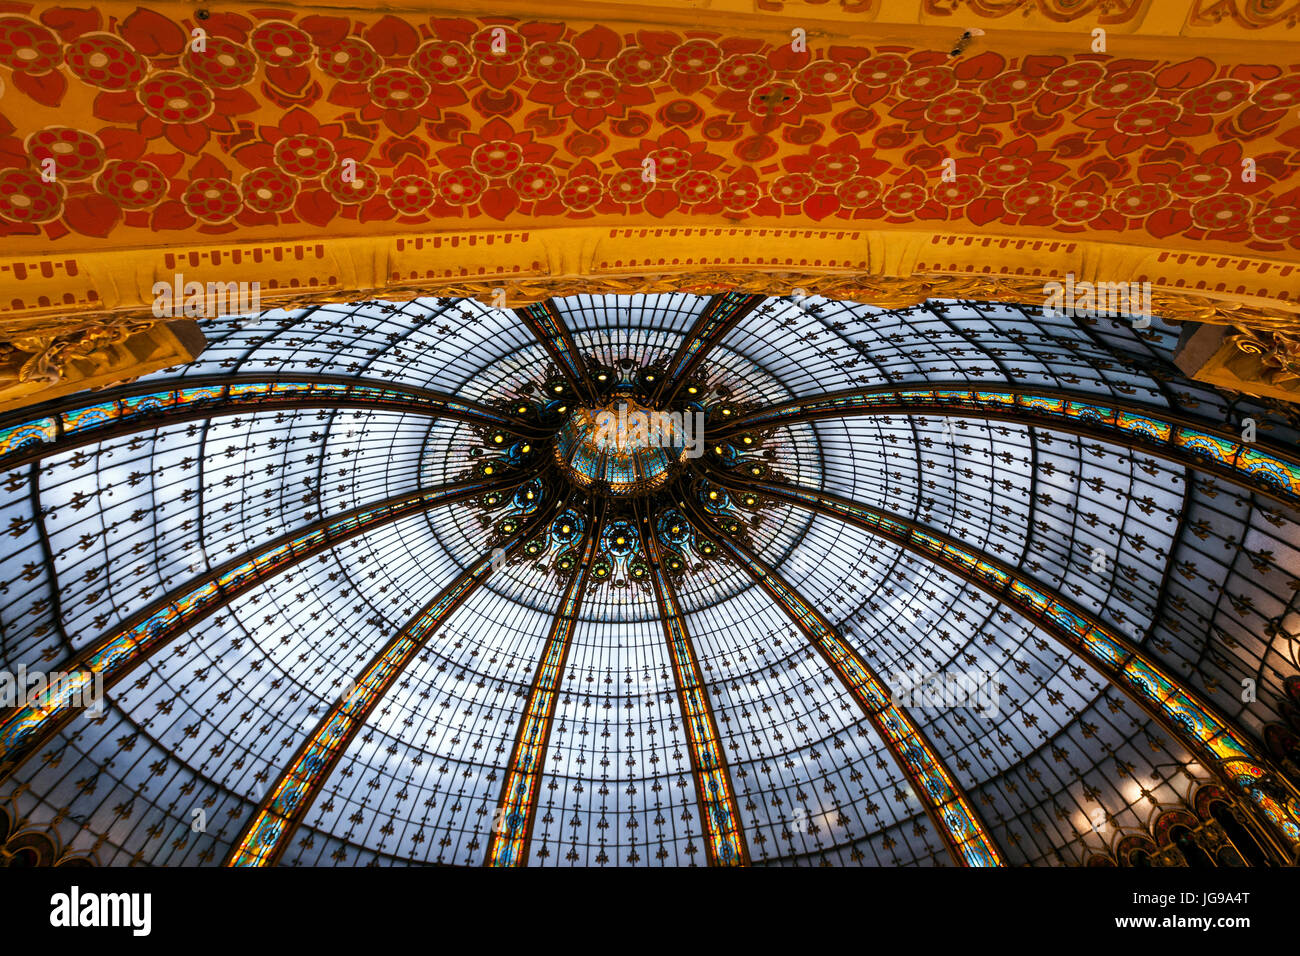 Galeries Lafayette Haussmann, upmarket French department store, by the architect Georges Chedanne and Ferdinand Chanut with a Art Nouveau dome, Paris Stock Photo